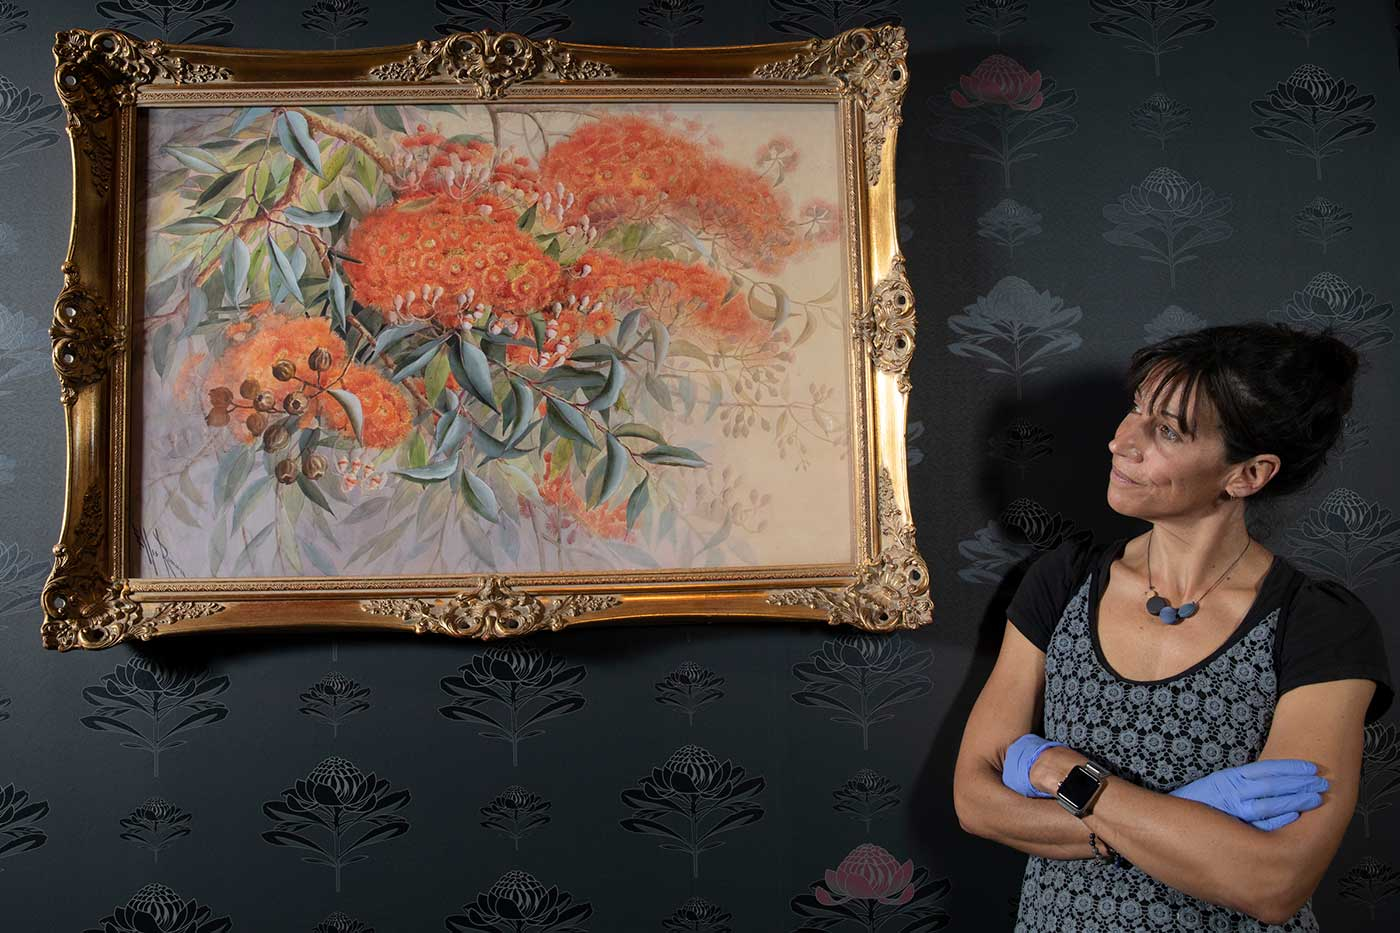 A female wearing blue conservation gloves stands with arms folded while looking up at a painting on the wall with decorative dark wall paper. The painting which is ornately framed features bright coloured Australian native plants and flowers.